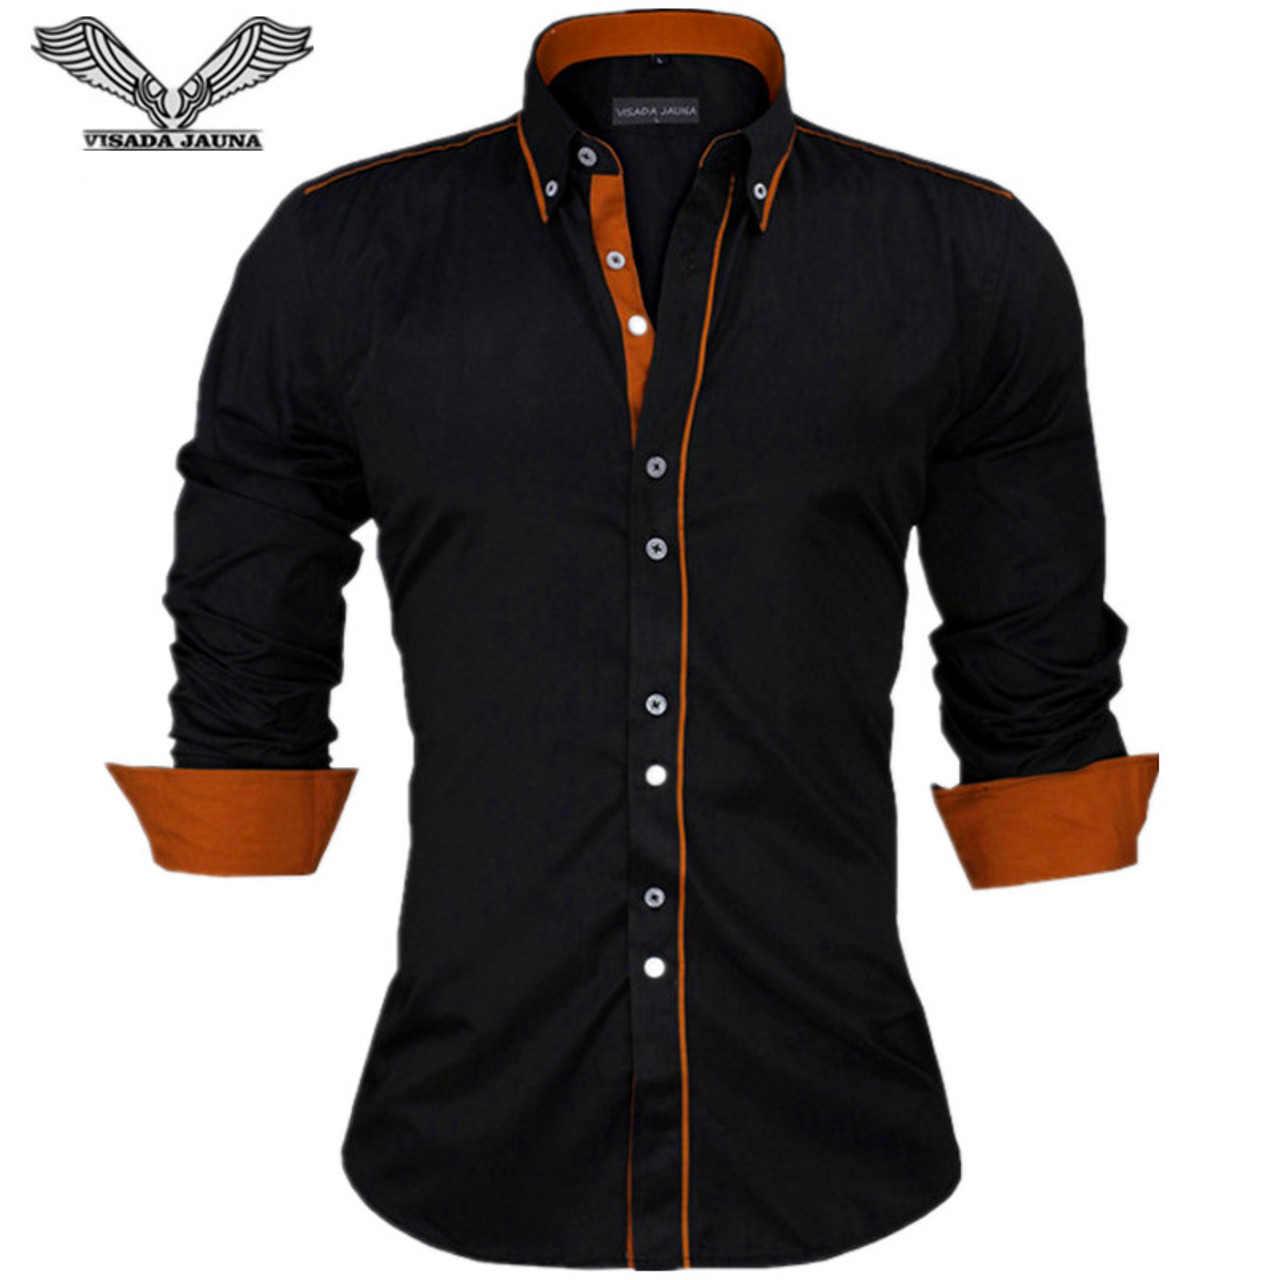 33b4371710c VISADA JAUNA Men Shirts Europe Size New Arrivals Slim Fit Male Shirt Solid Long  Sleeve British ...